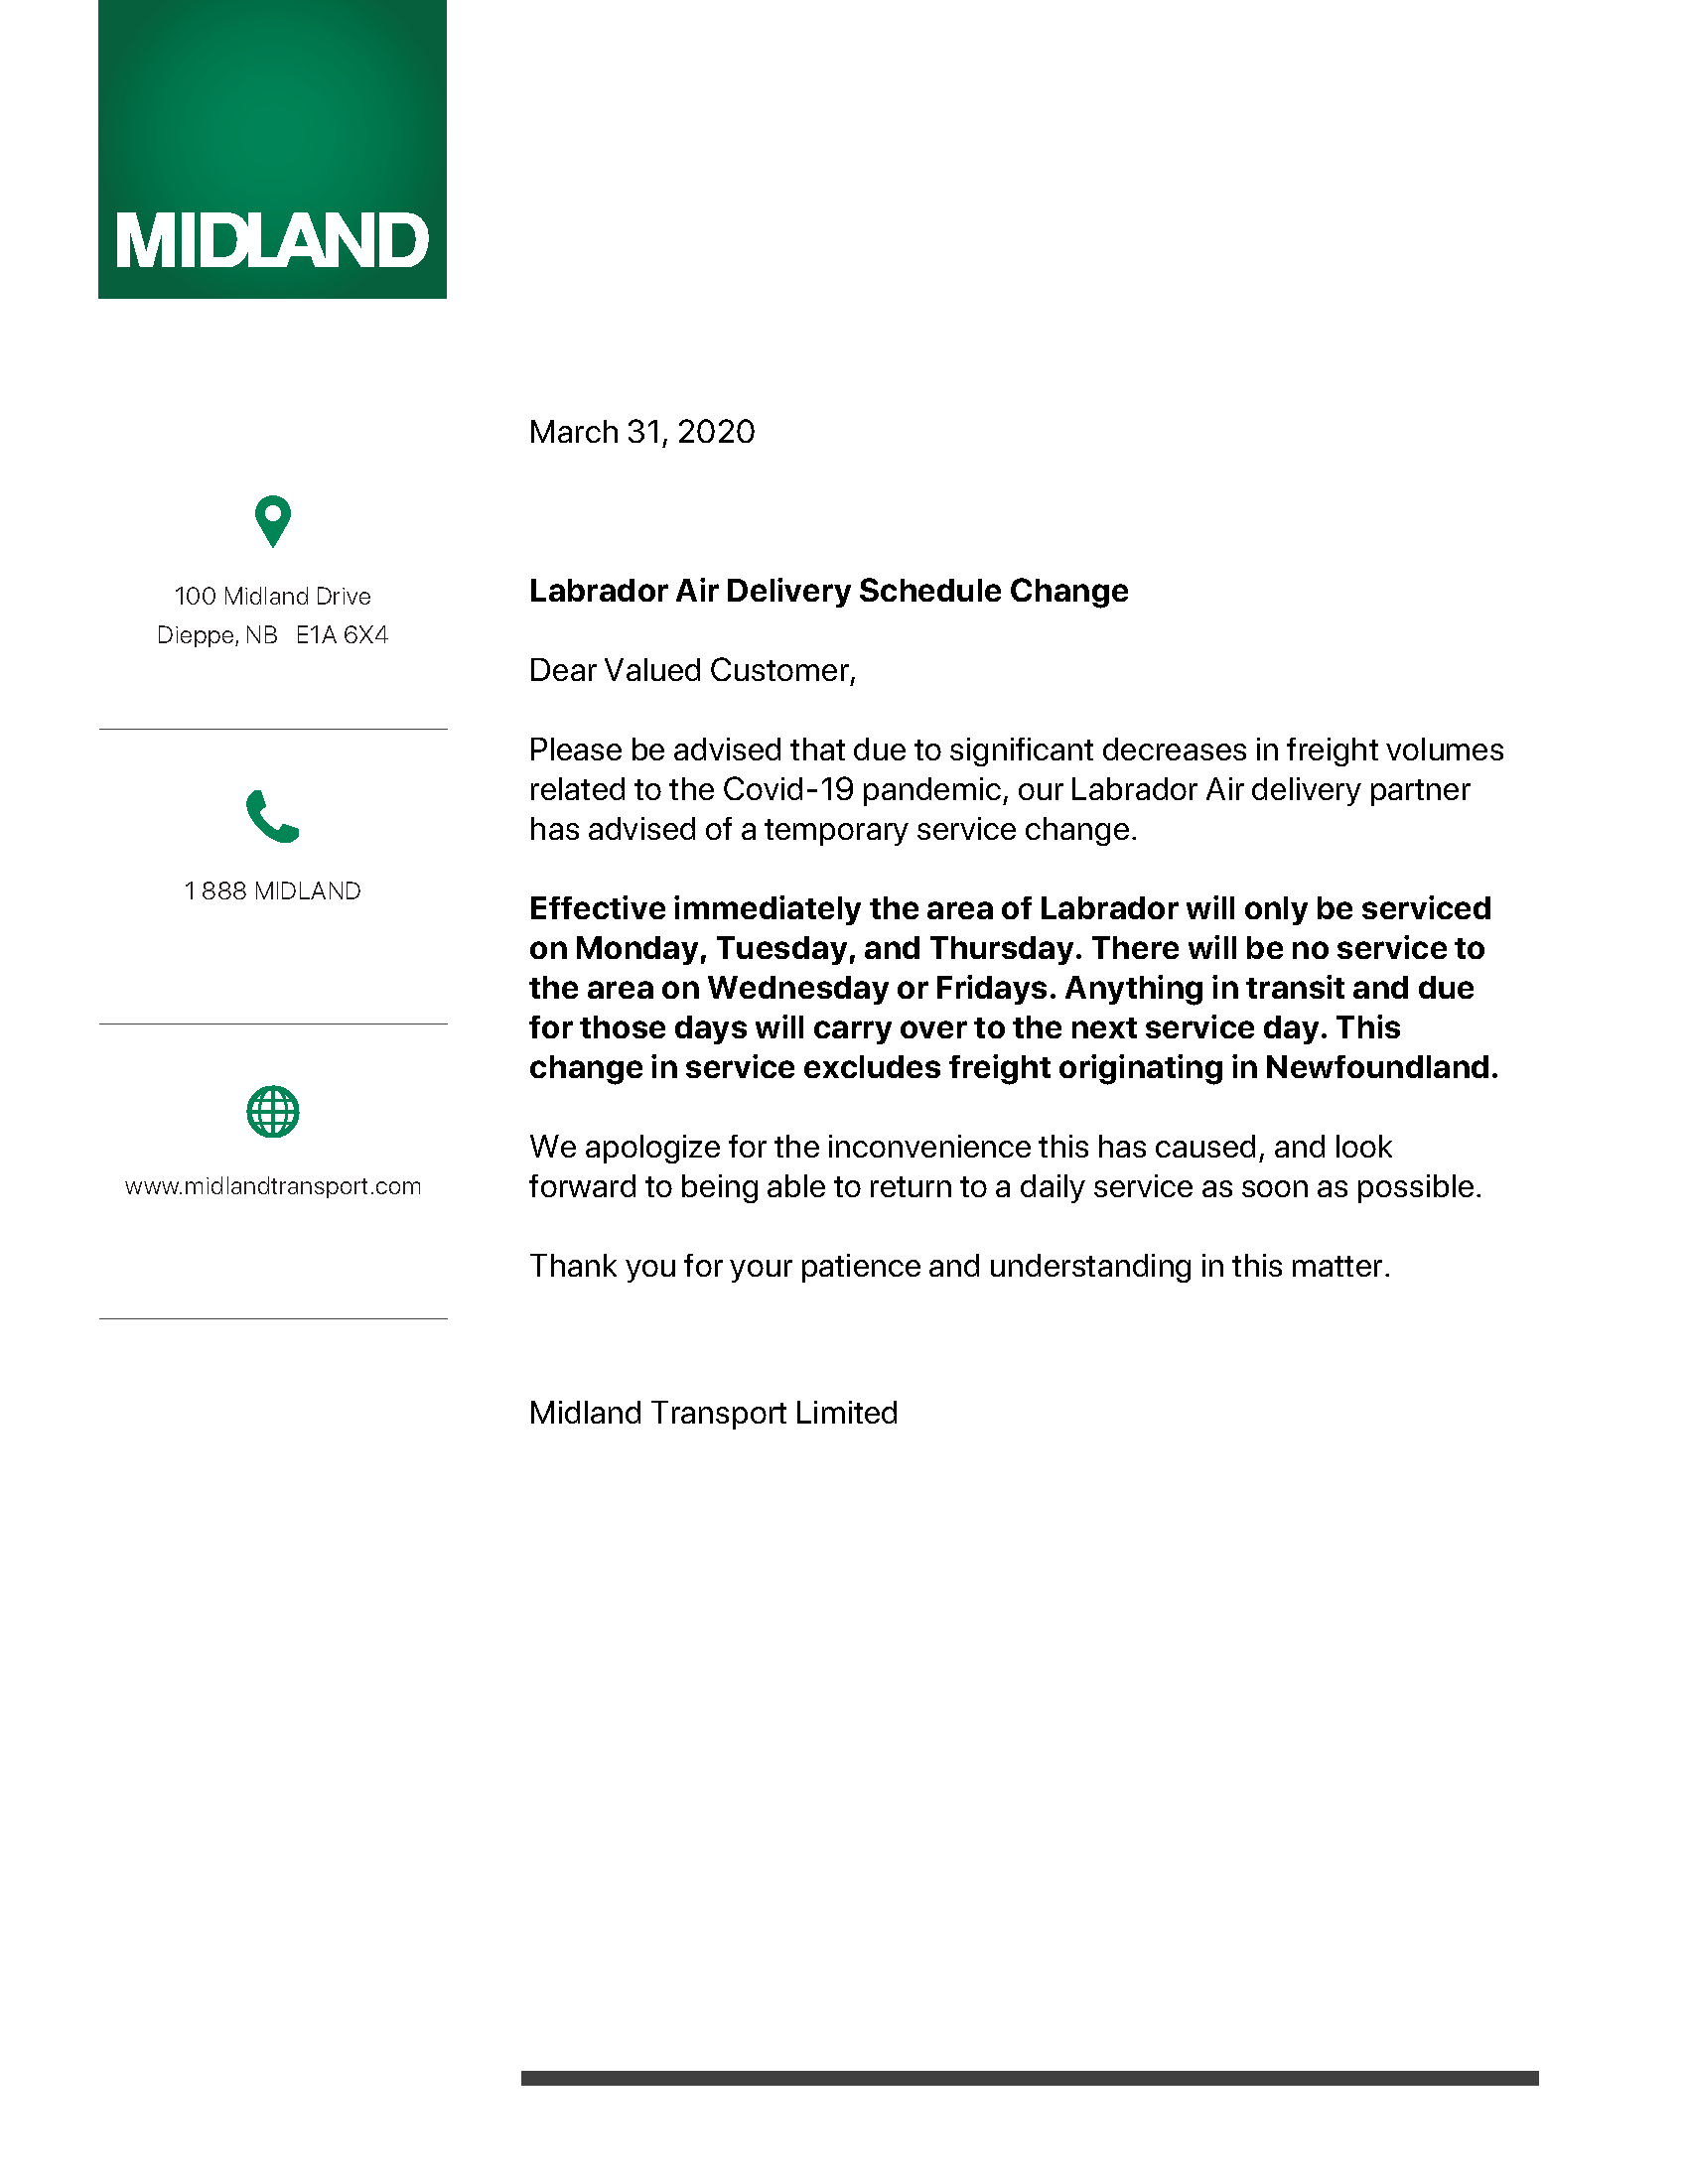 Labrador Air Delivery Schedule Change  - March 31, 2020